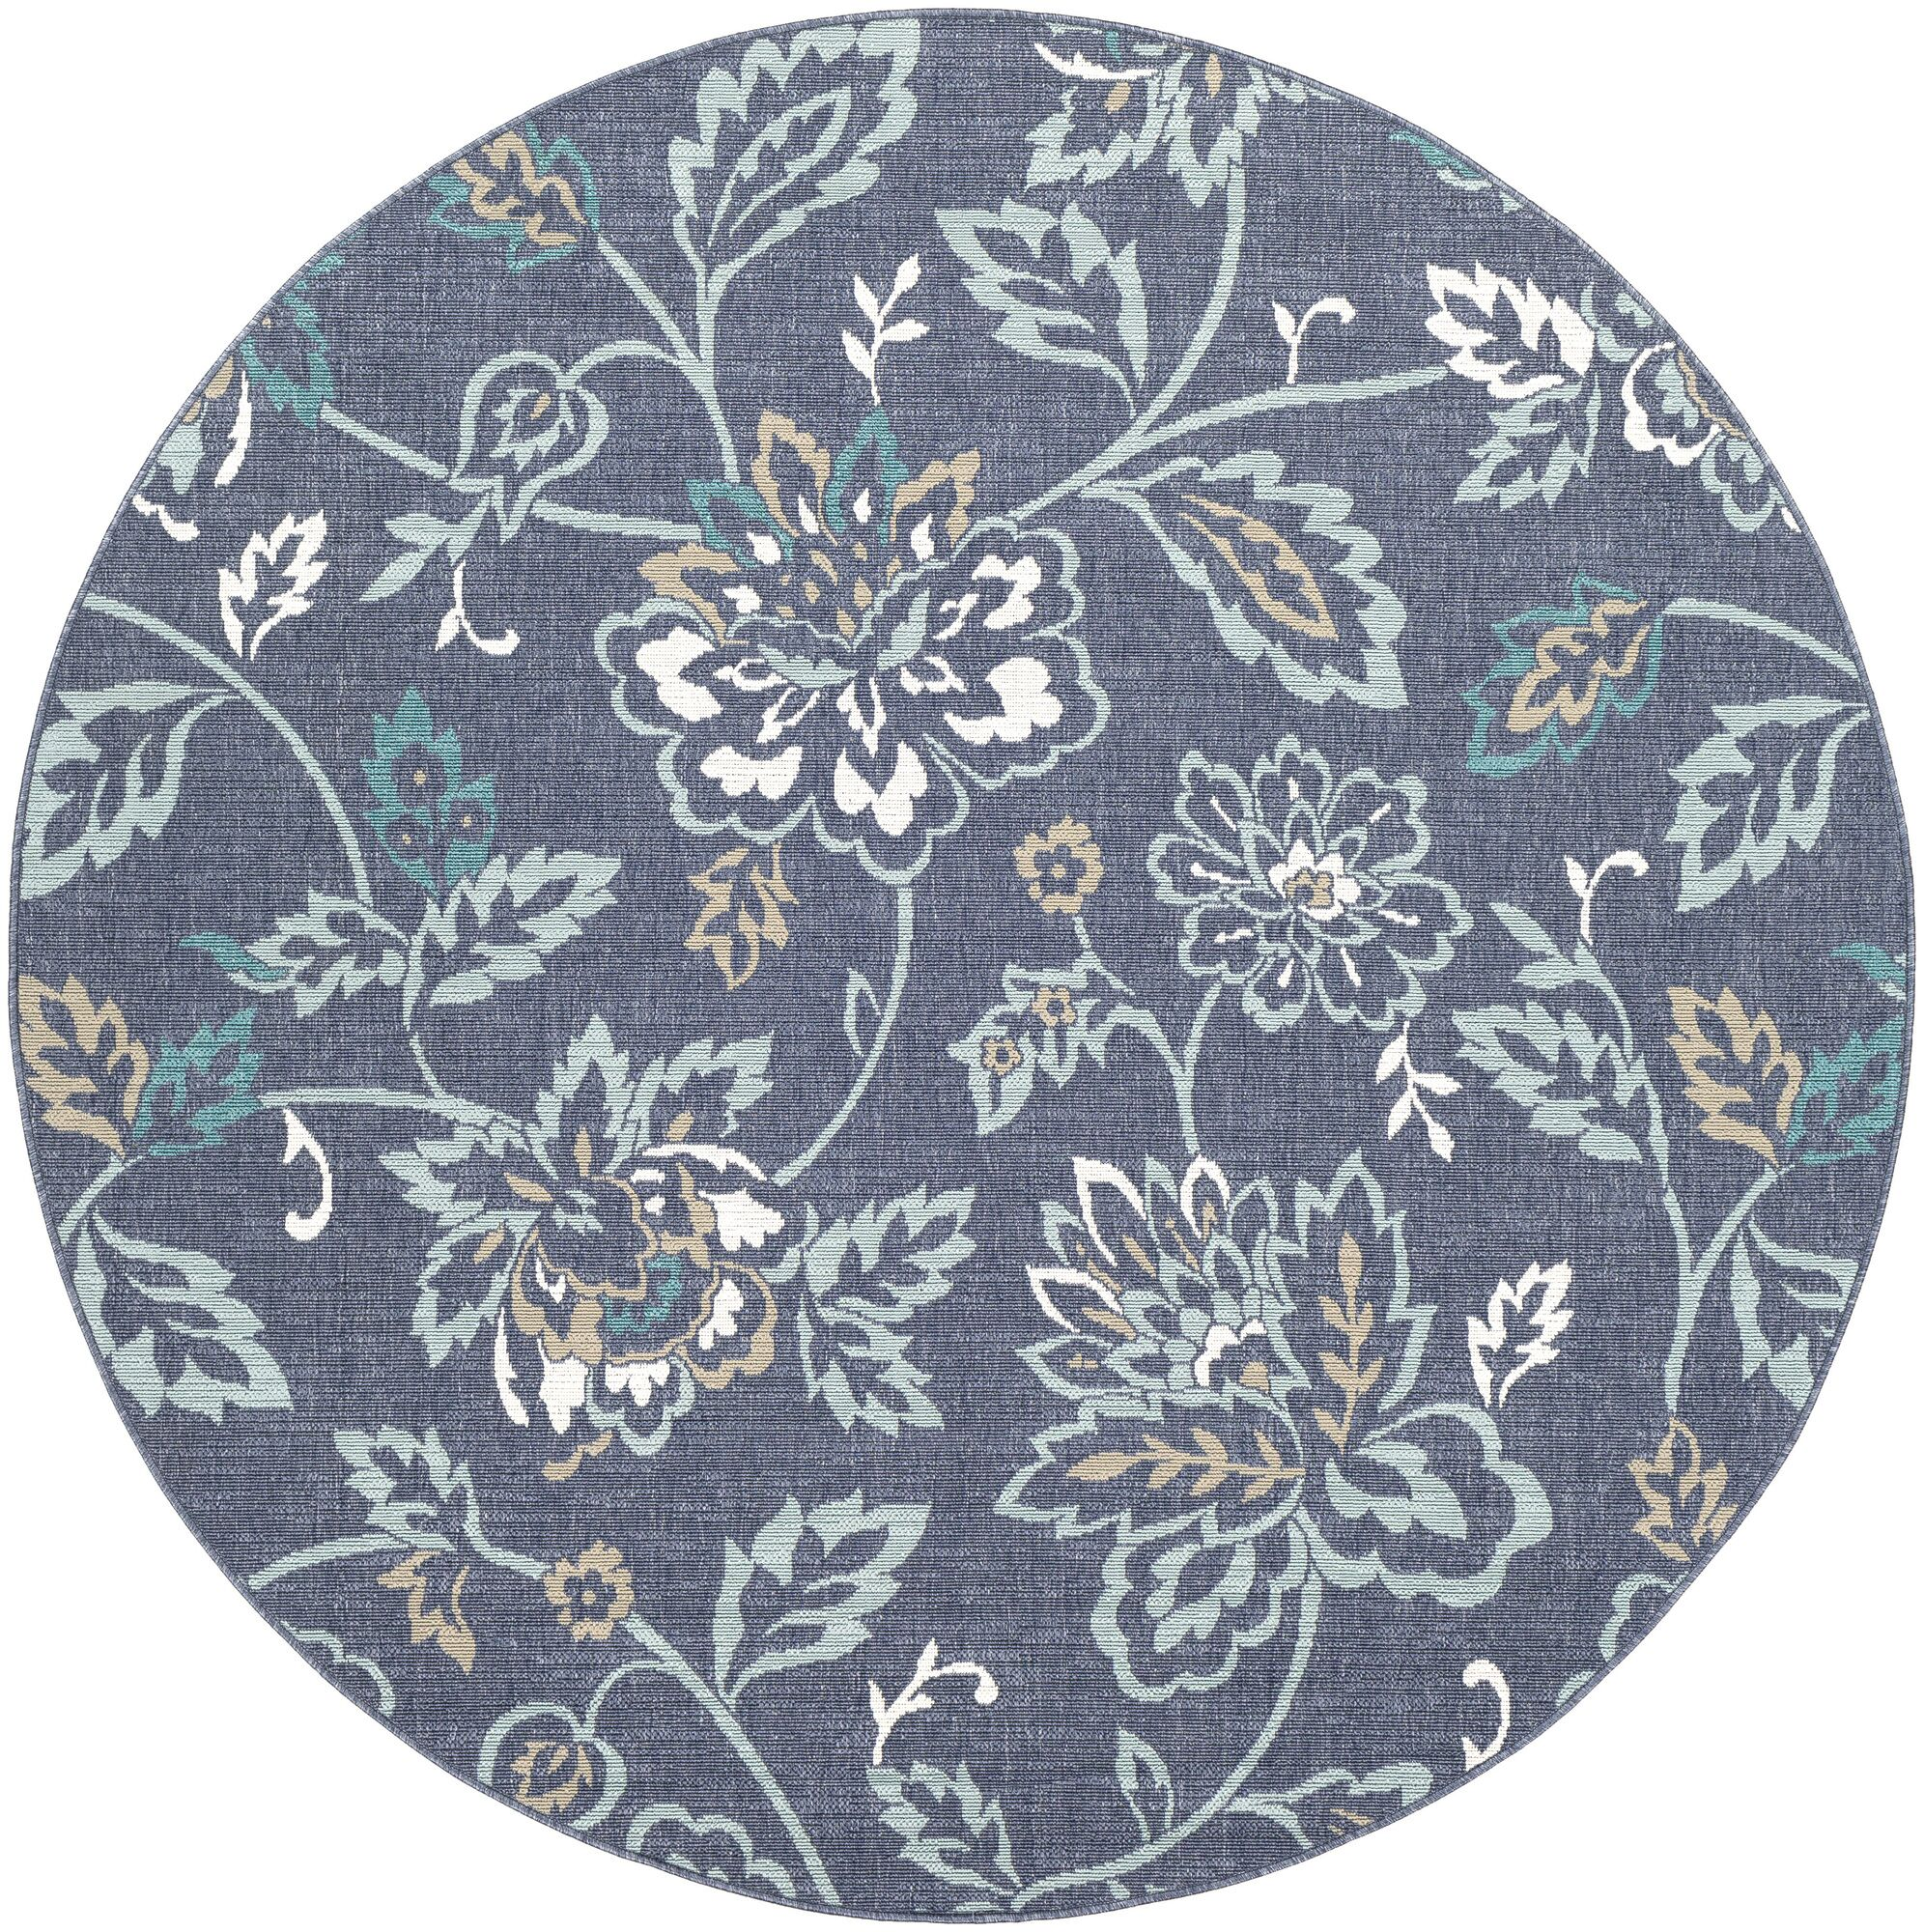 Pearce Floral Charcoal/Aqua Indoor/Outdoor Area Rug Rug Size: Round 5'3